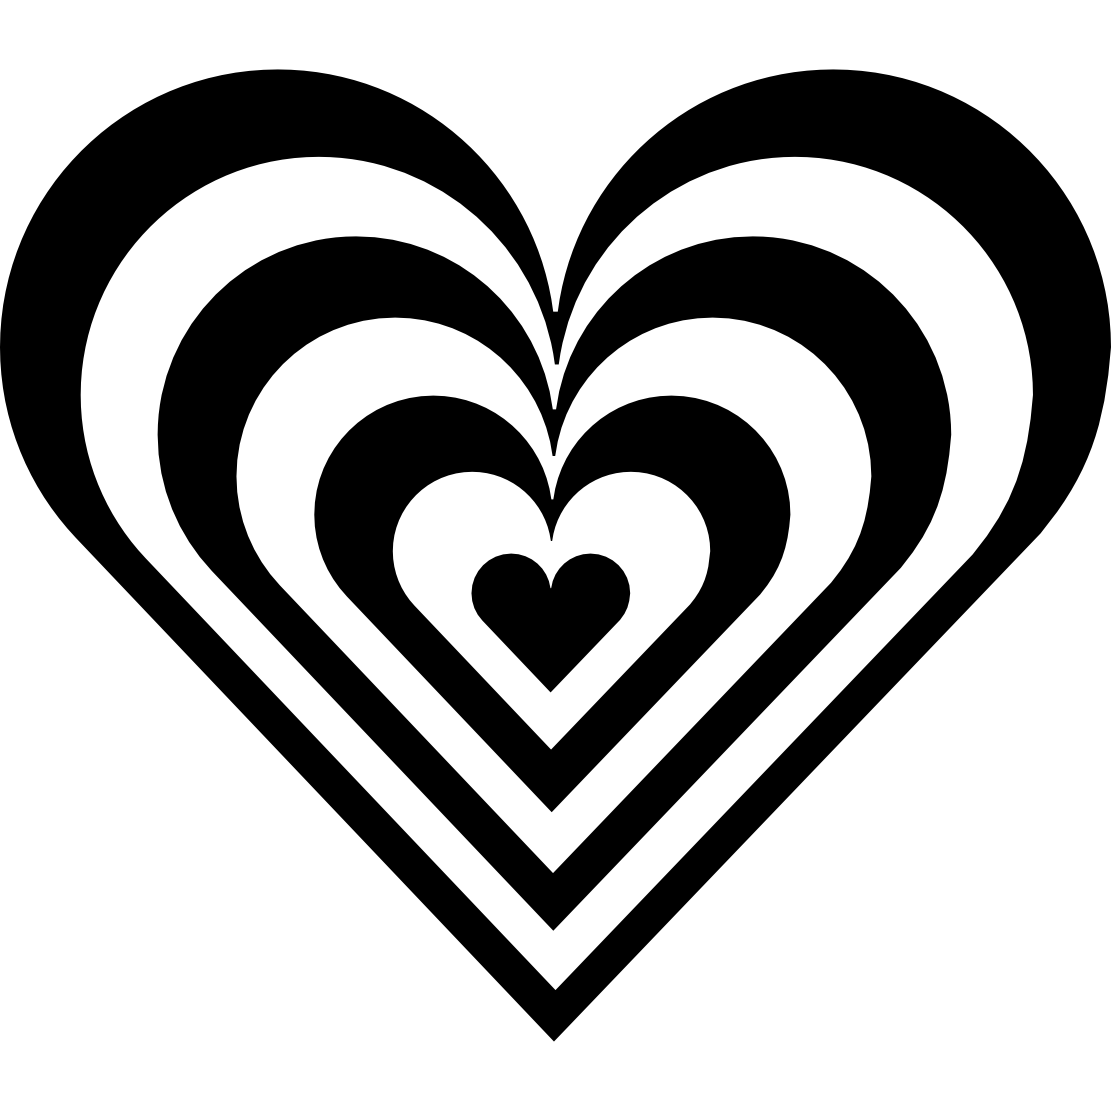 Heart  black and white heart clip art black and white free clipart images